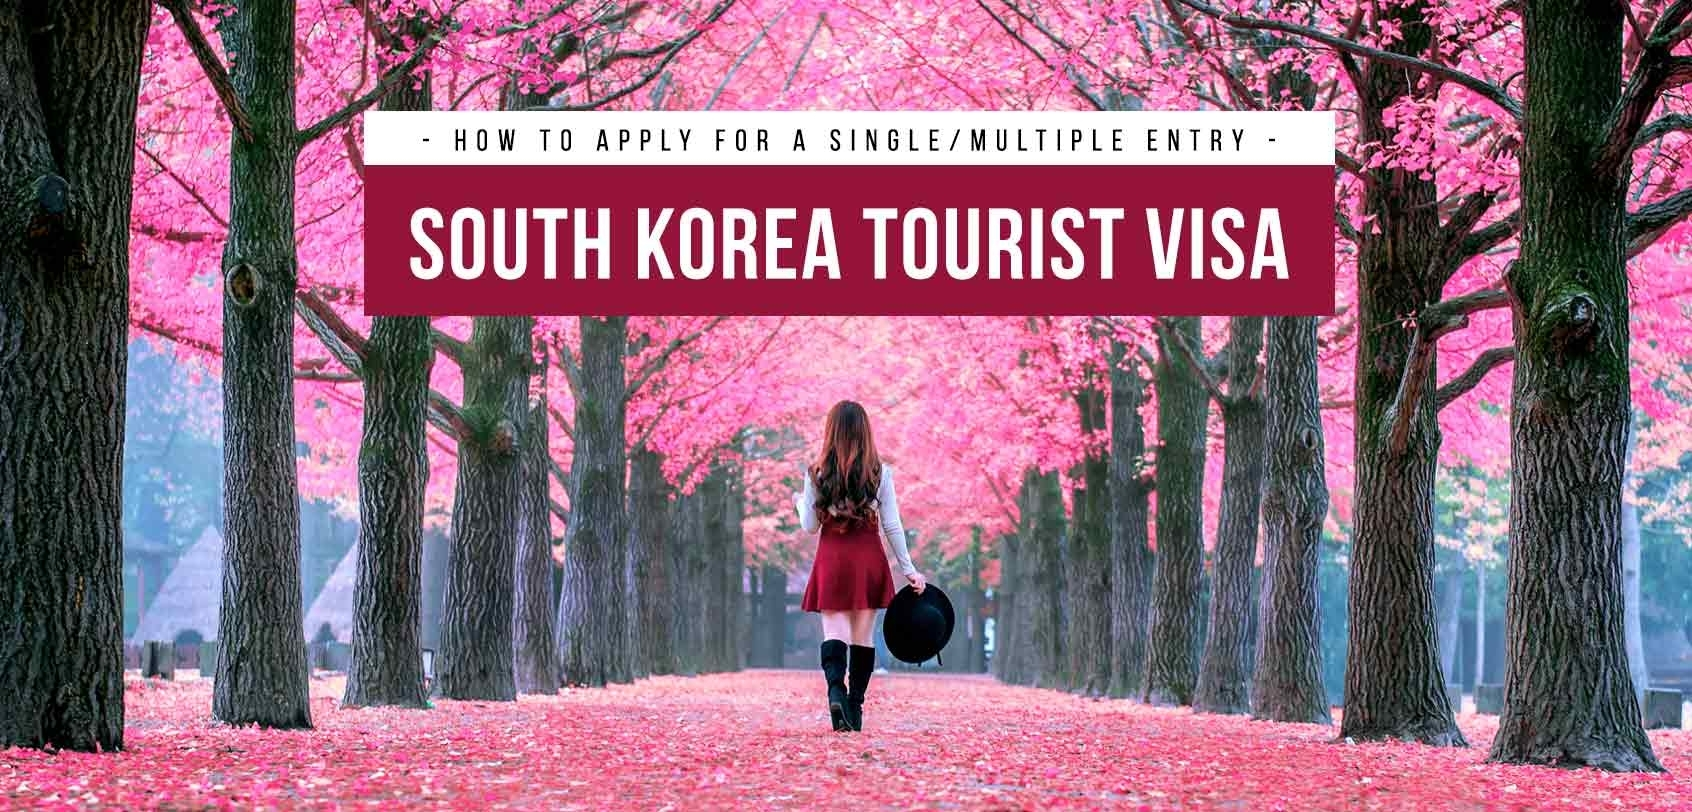 Updated) How To Apply For Single / Multiple Entry South Korea Visa for Travel Agency To Korea In The Philippines